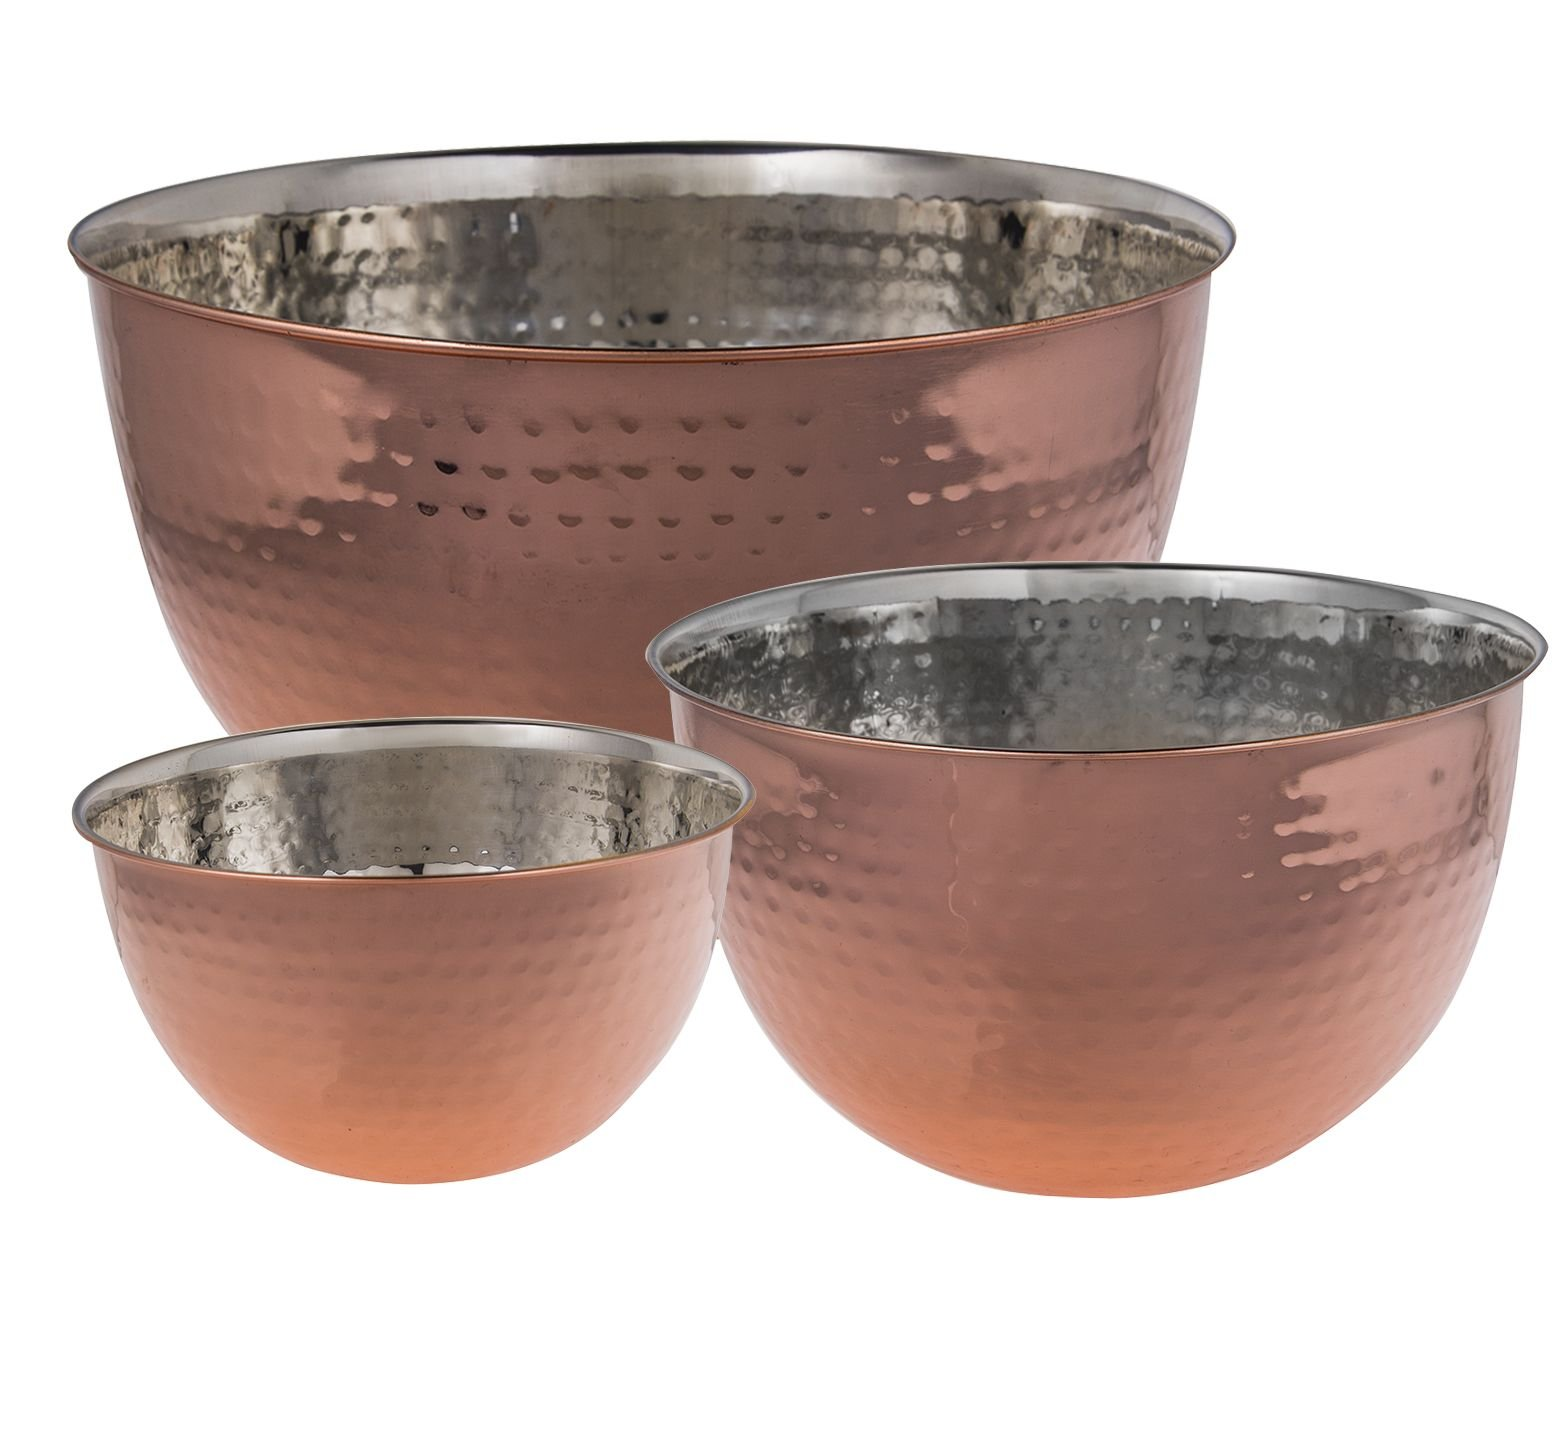 Set Of 3 Copper Hammered Mixing Bowls With Stainless Steel Interior Finish Nesting Bowls, Chef Cookware Set, by Le'raze (Image #3)